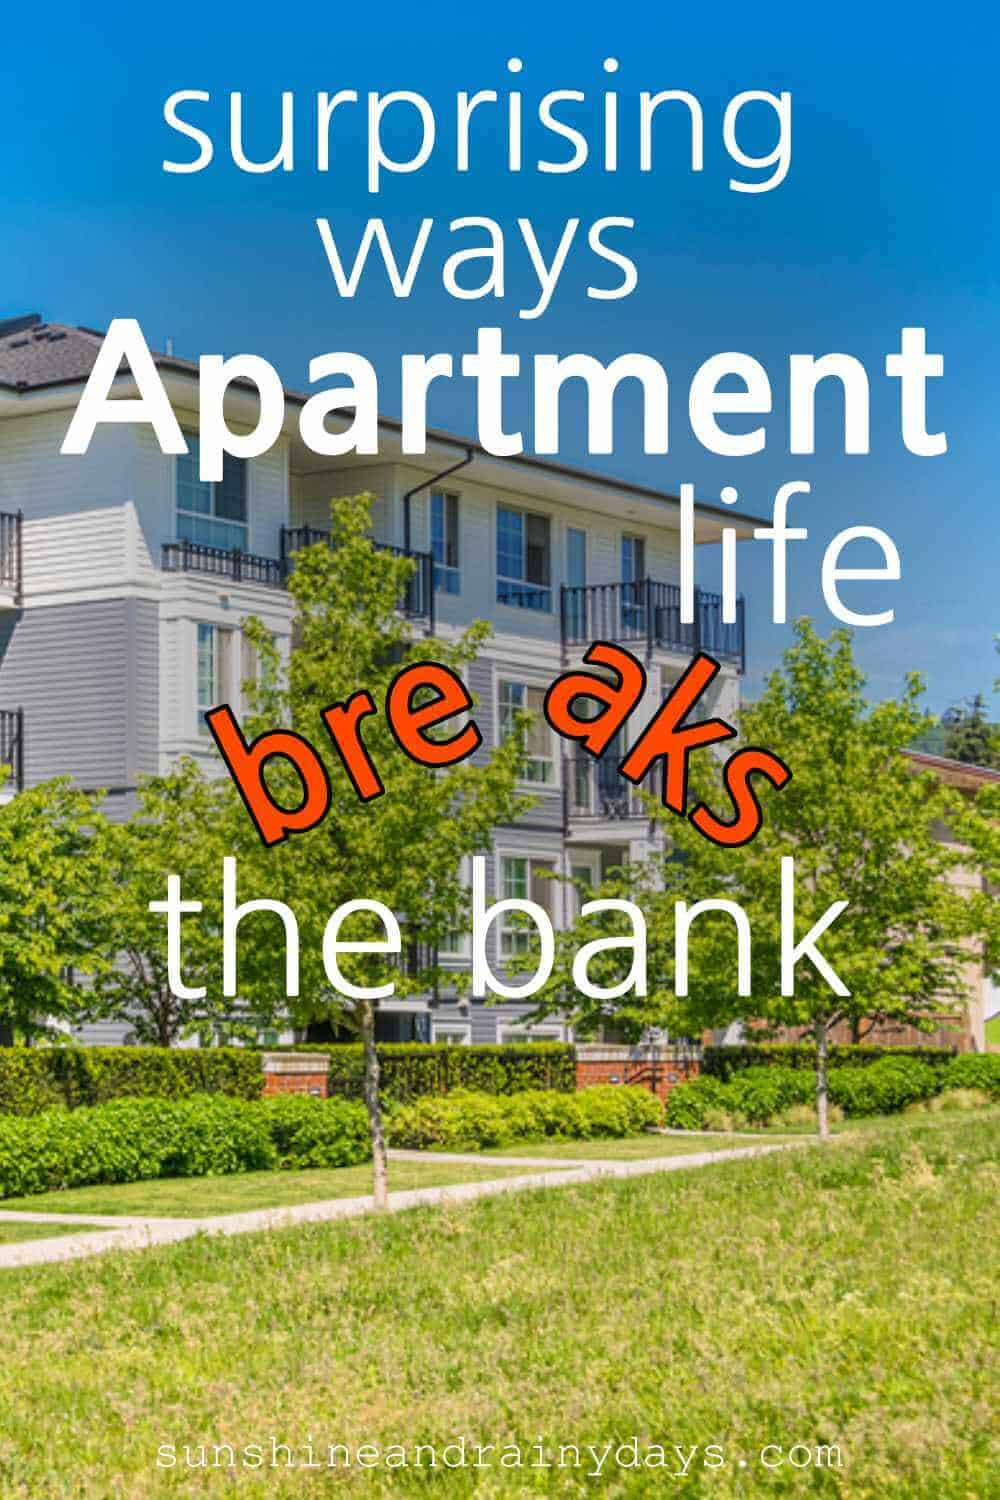 Can you save money living the apartment life? Here are surprising ways apartment life breaks the bank.